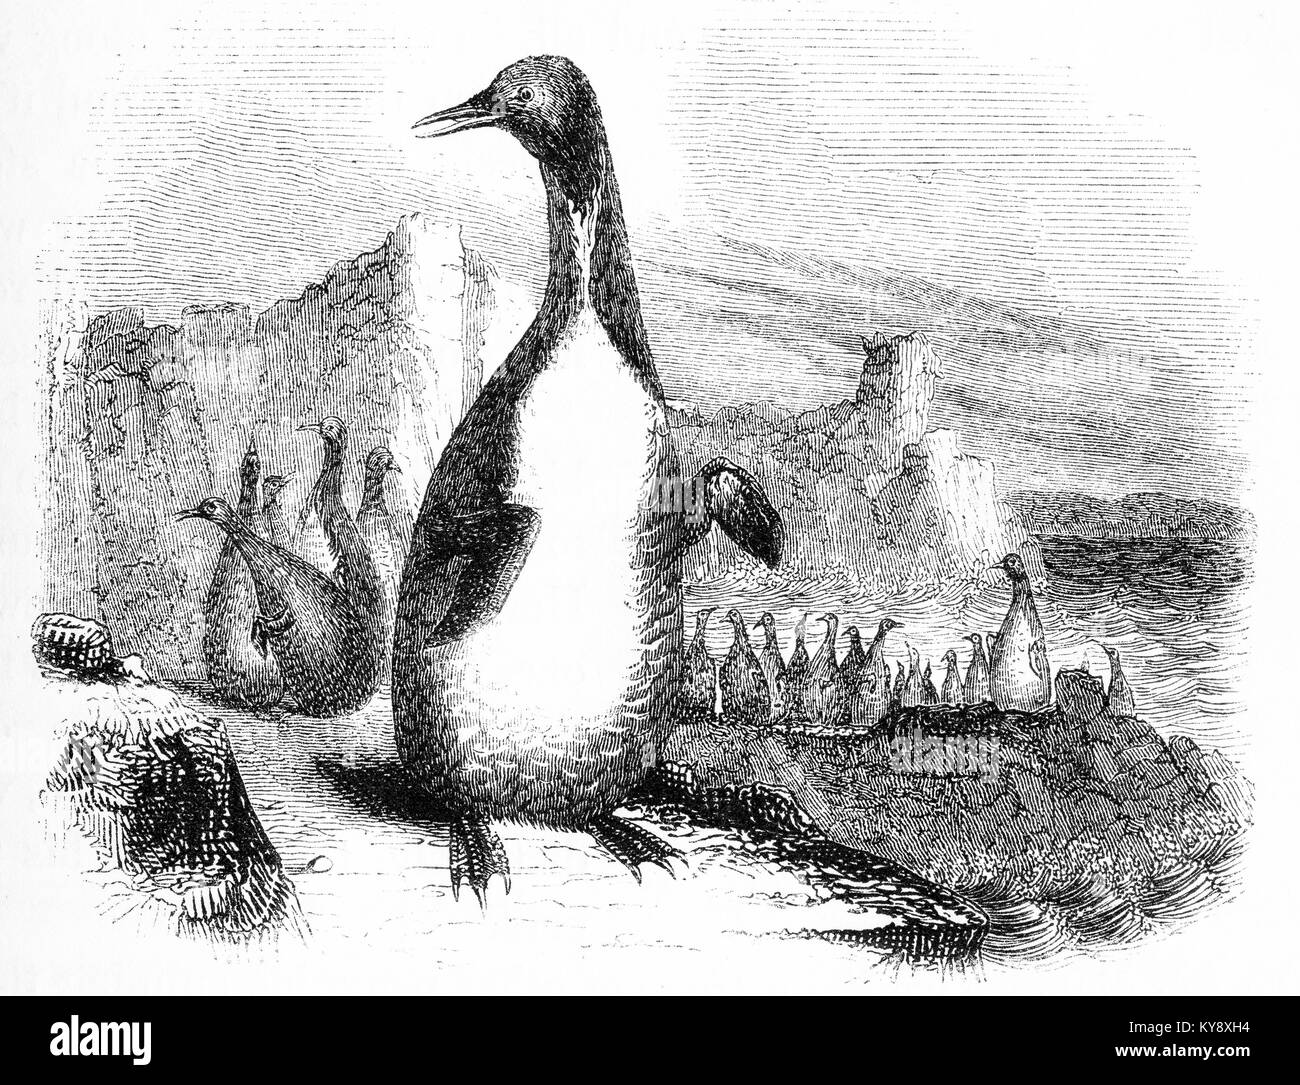 Engraving of an unidentified species of penguin at a time when the Antarctic was largely unexplored. From an original - Stock Image